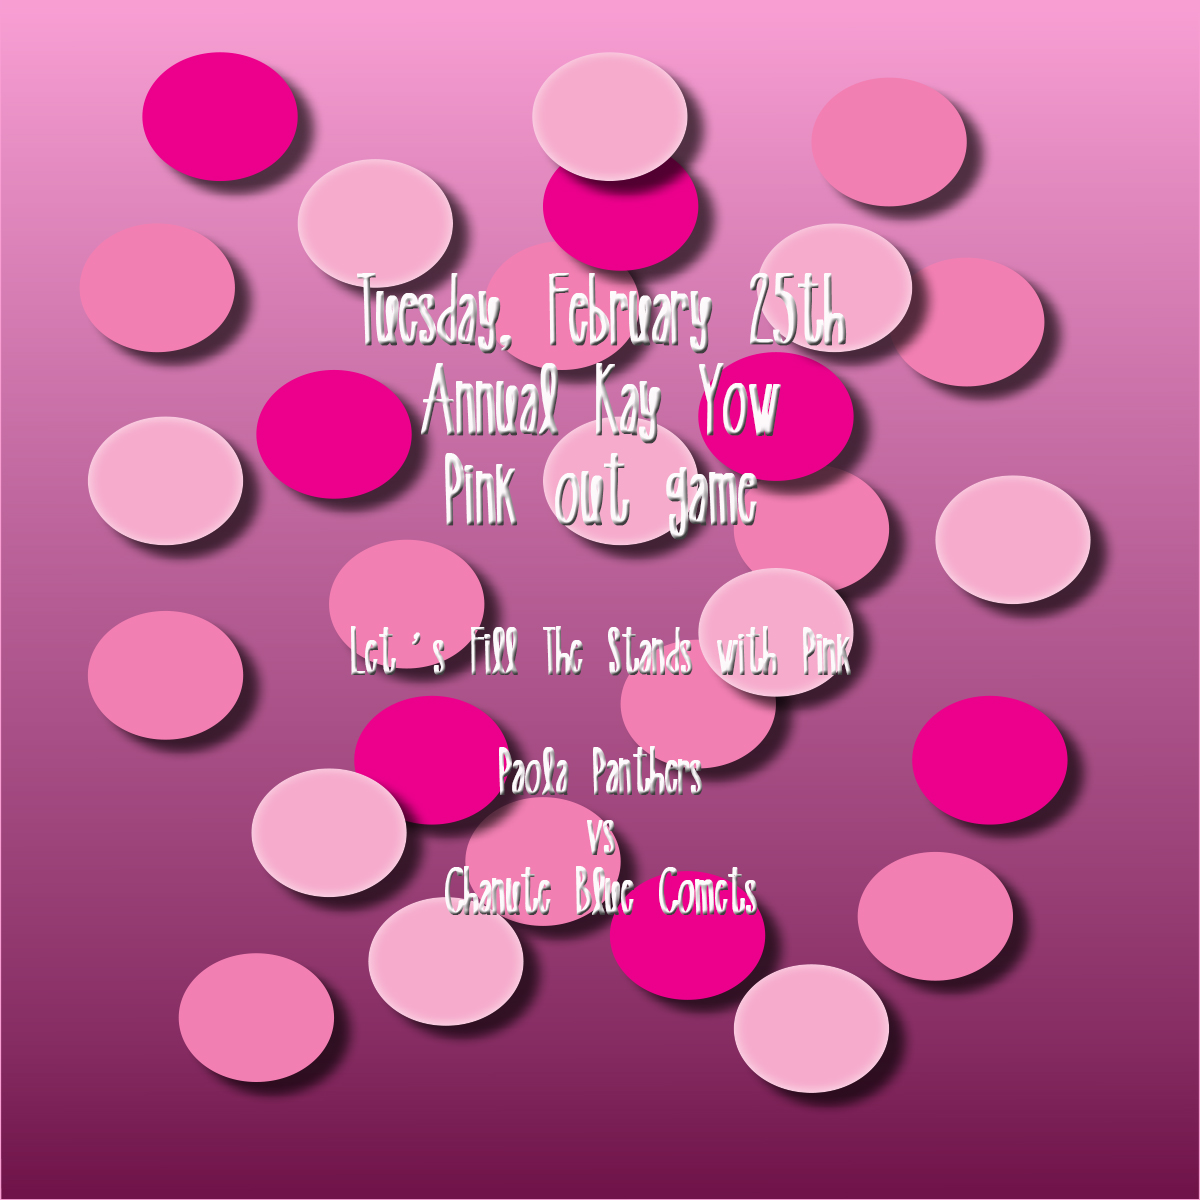 Wear Pink on February 25th